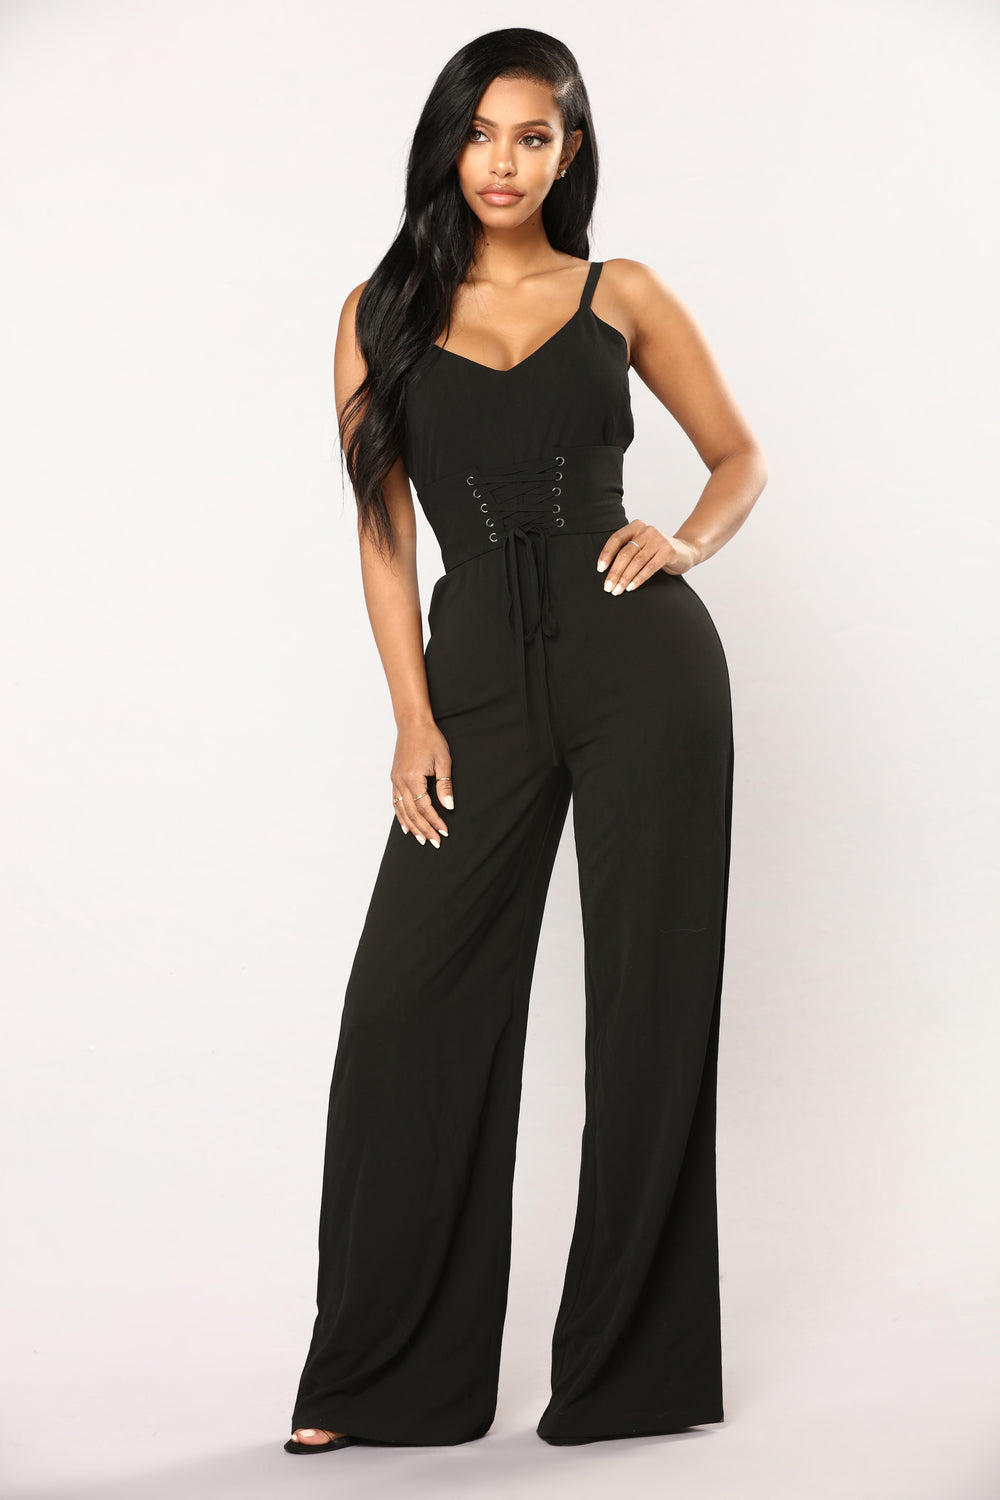 See Ya Later Boy Corset Jumpsuit - Black